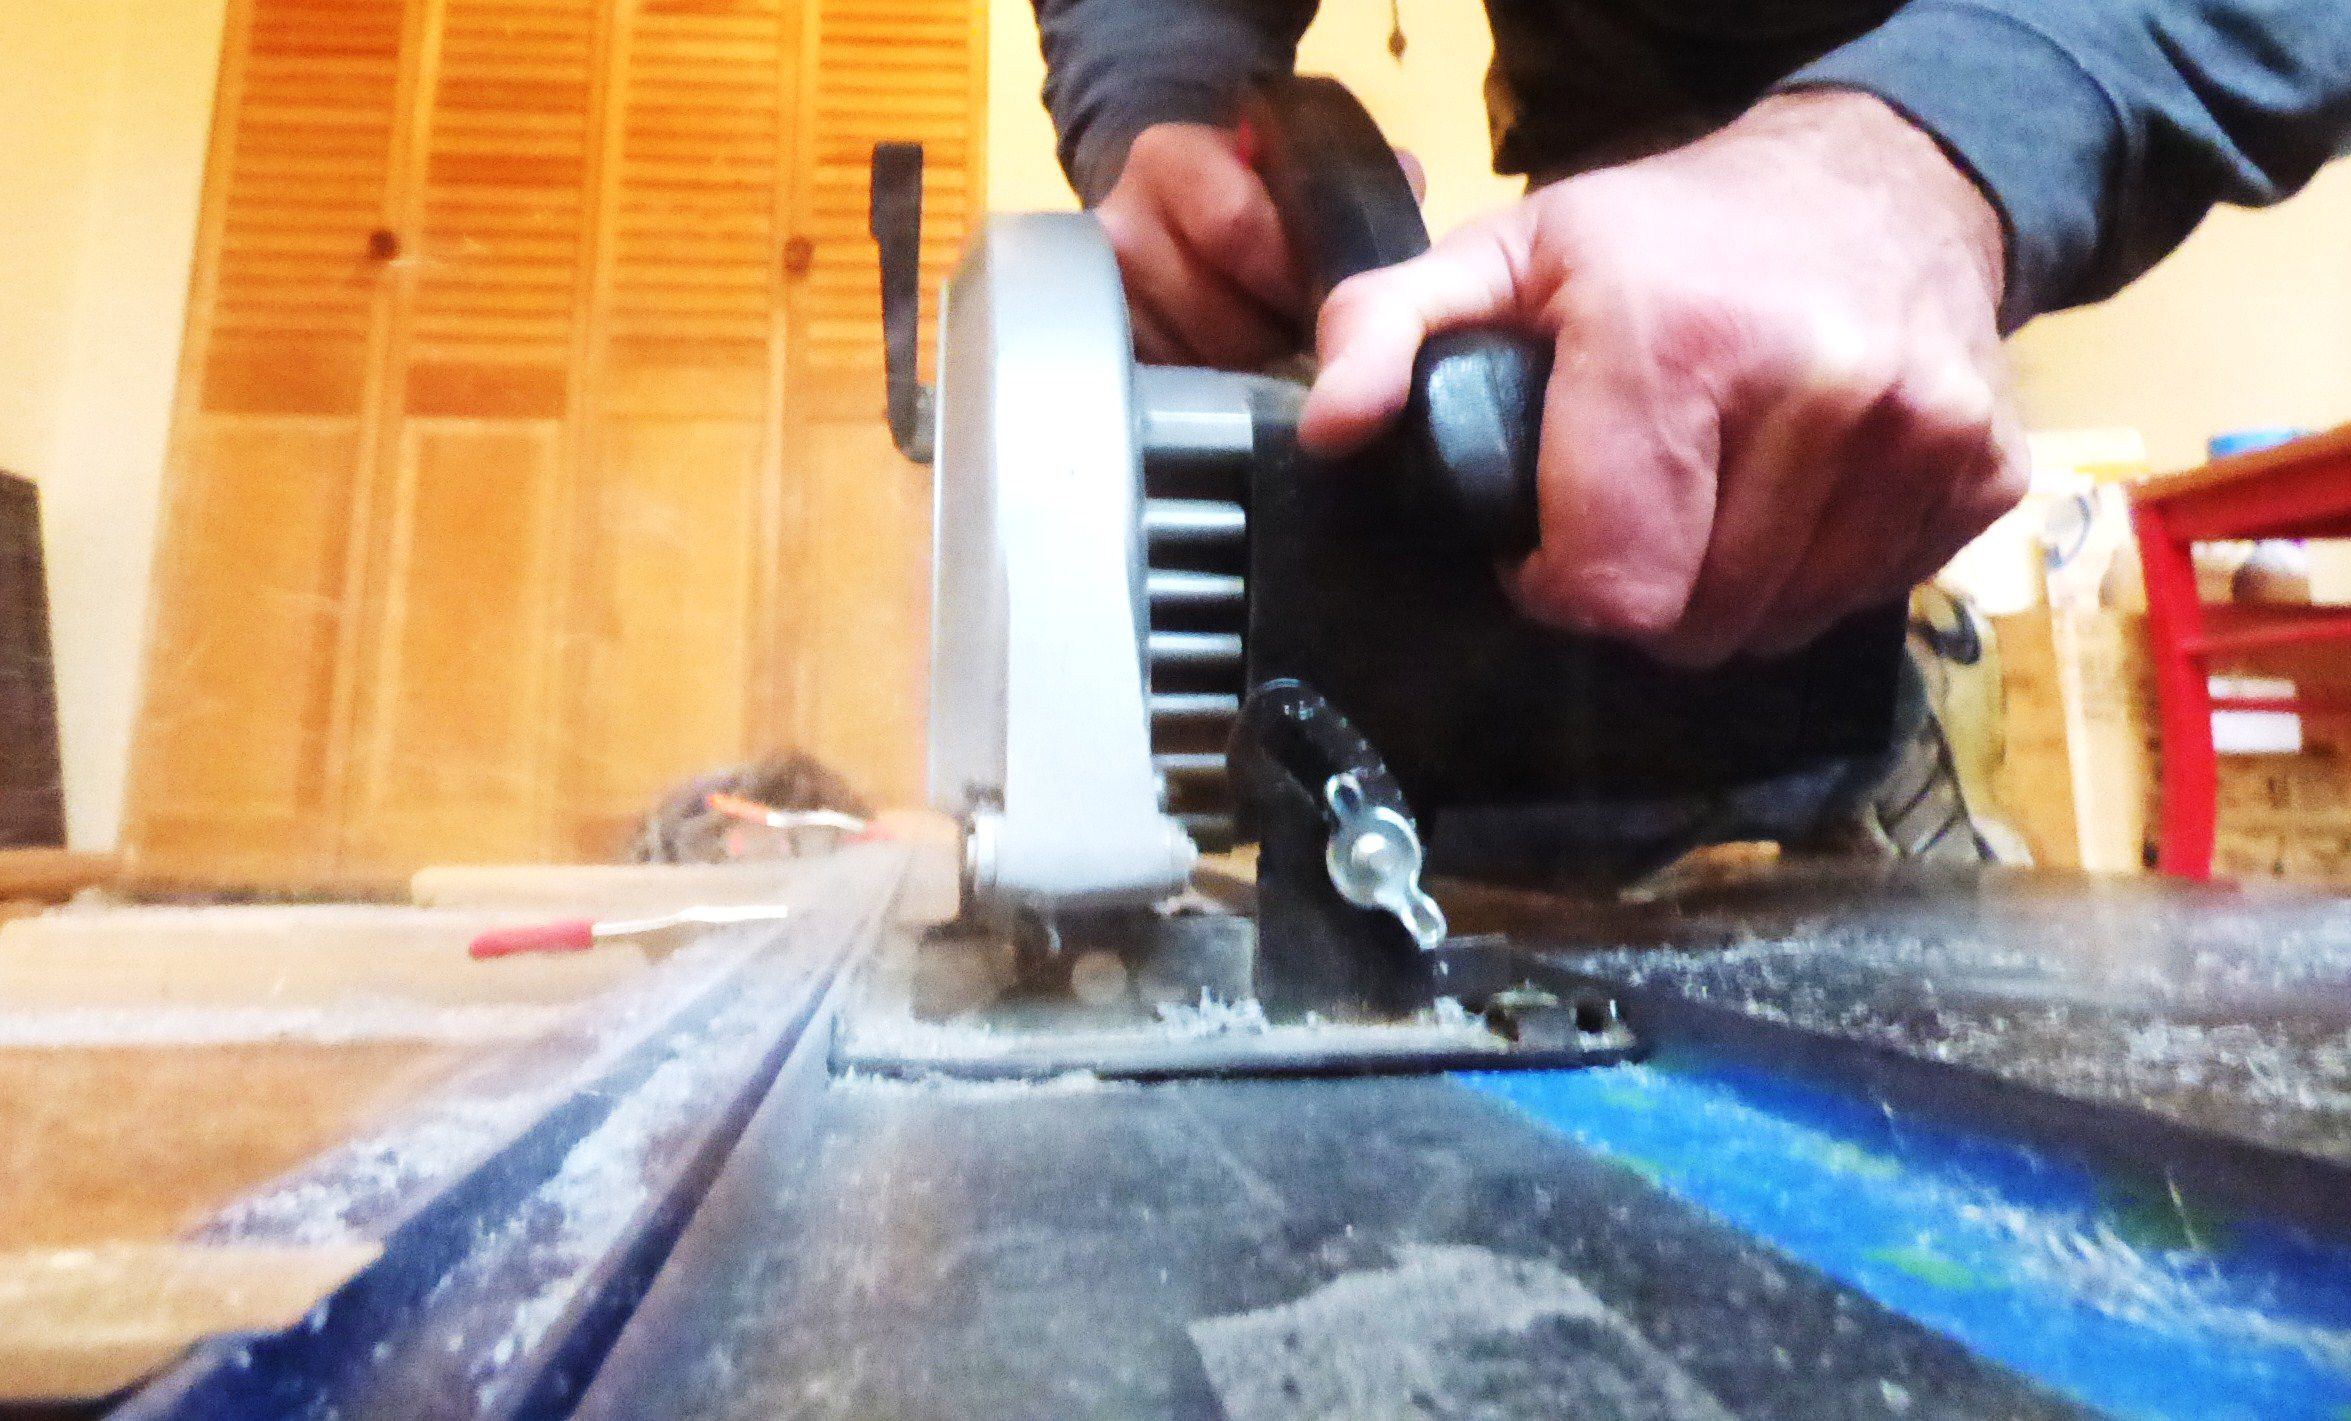 5 best tools for cutting ceramic tile how to cut corian with simple tools kitchen floor tile dailygadgetfo Images